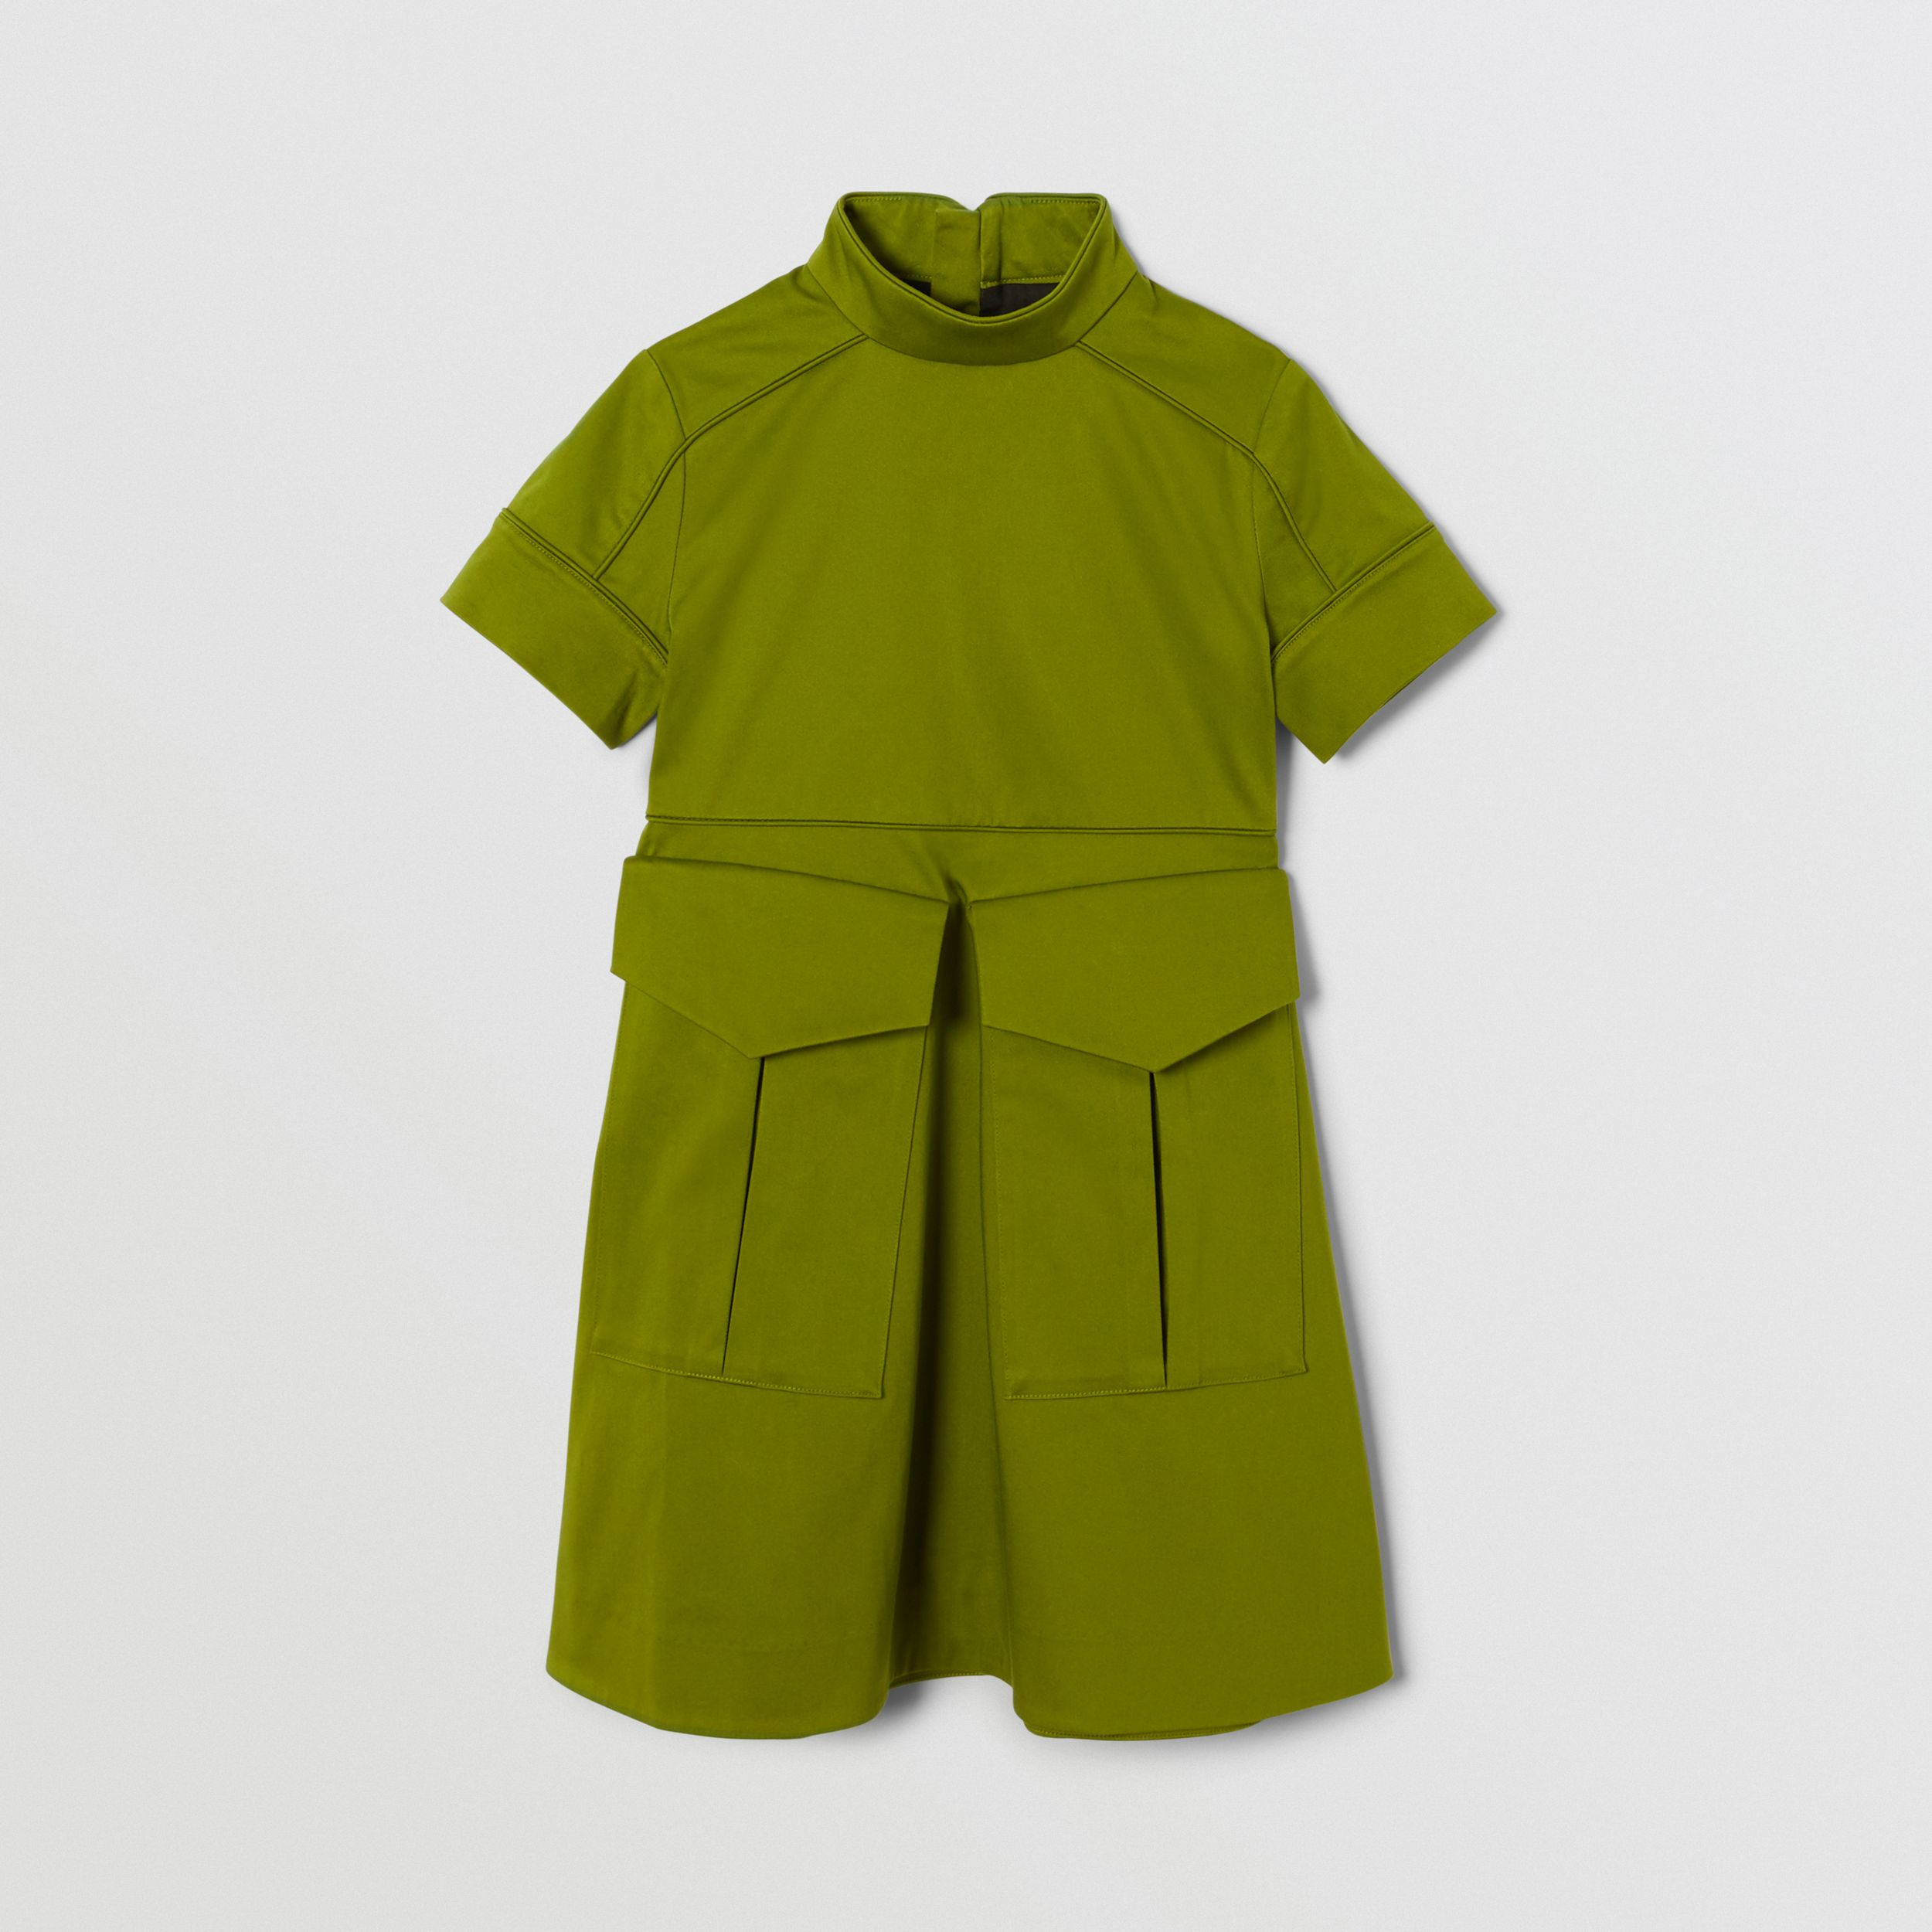 Short-sleeve Cotton Sateen Funnel Neck Dress in Bright Green | Burberry - 1